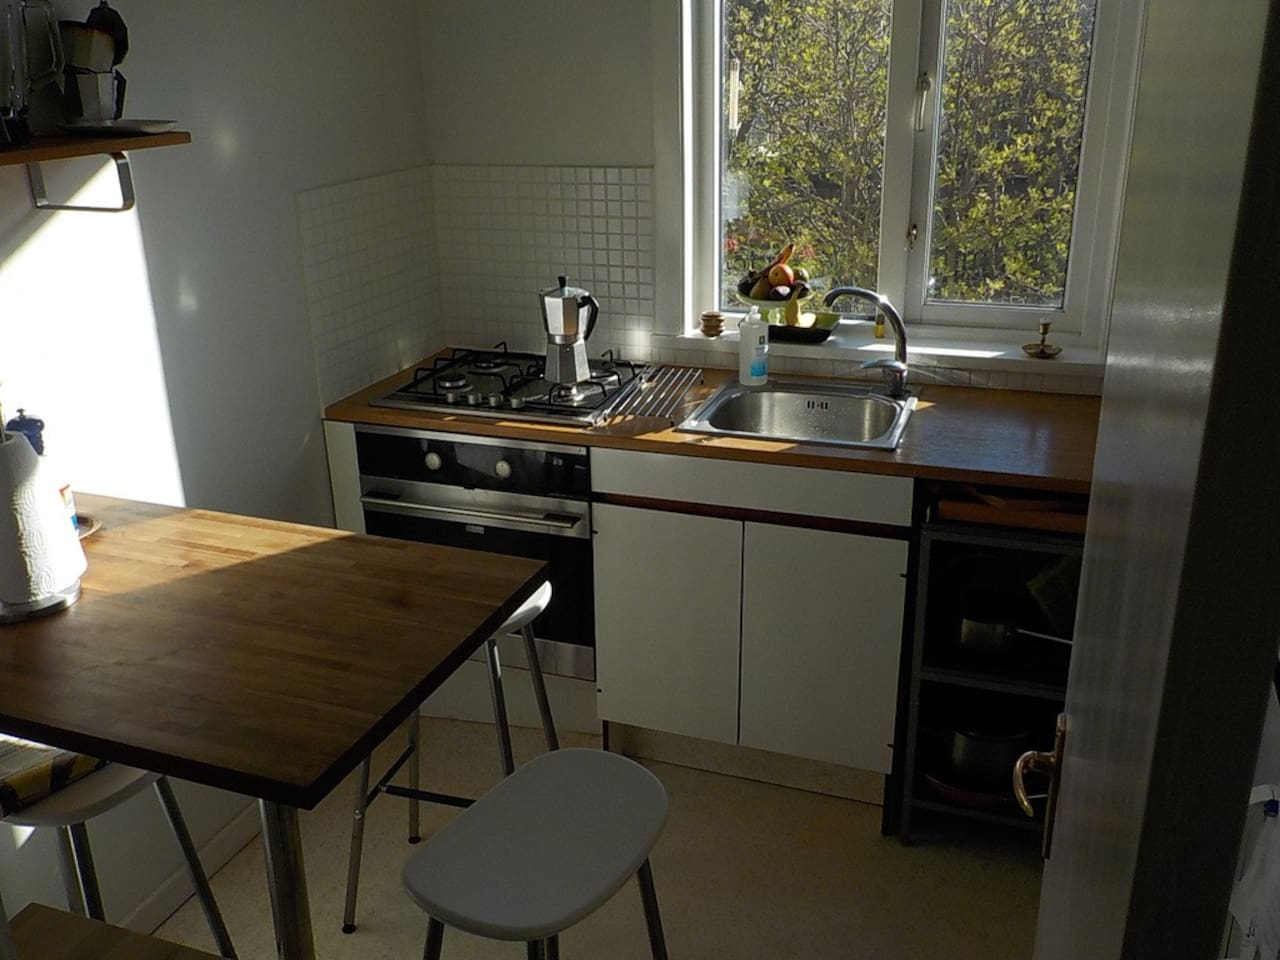 The kitchen in the morning sun